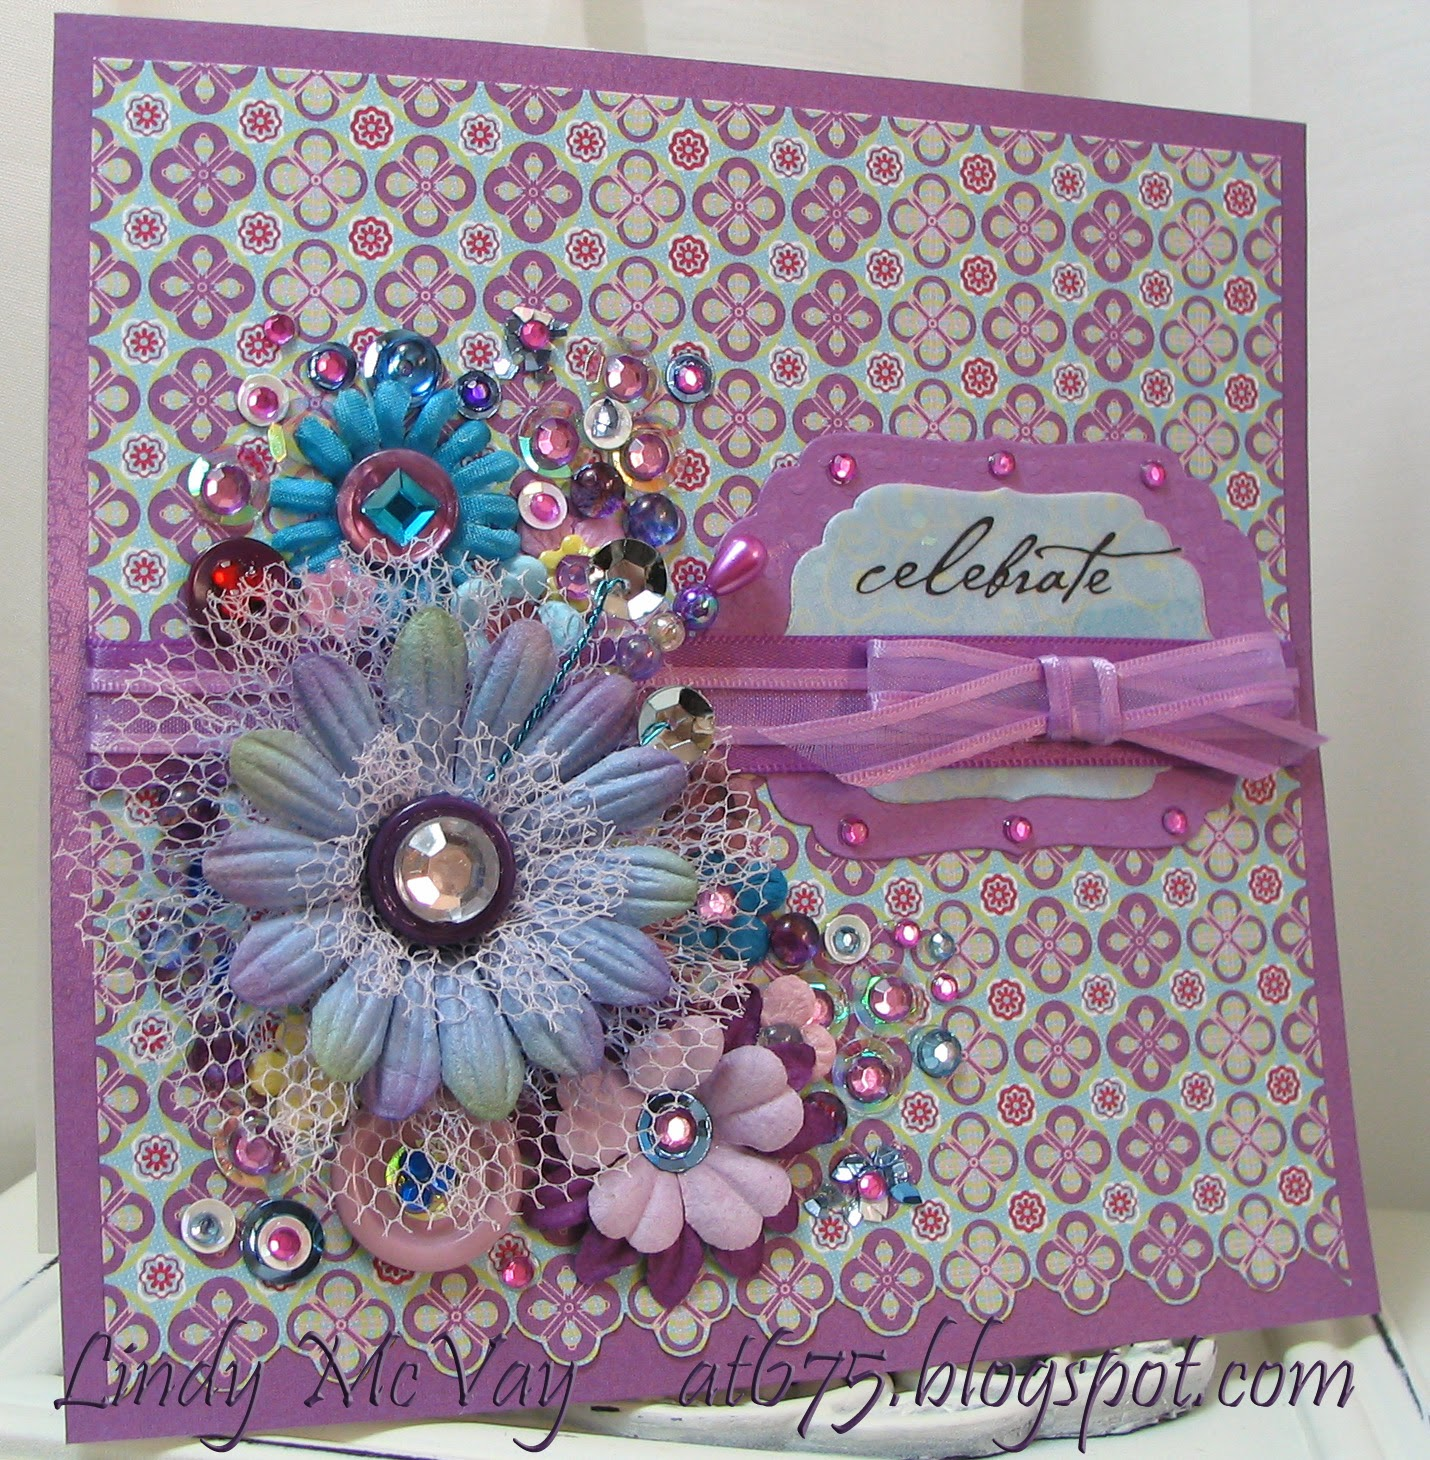 handmade card, birthday card, BasicGrey, Euphoria 6x6, BasicGrey  Spellbinders Labels Four die, Cloud 9 Design rub-ons, Offray ribbon, paper flowers, Prima paper flowers, silk flowers, Bazzill Bitty Blossom, stickpin, beads, buttons, sequins, gems, dewdrops, colored wire, netting